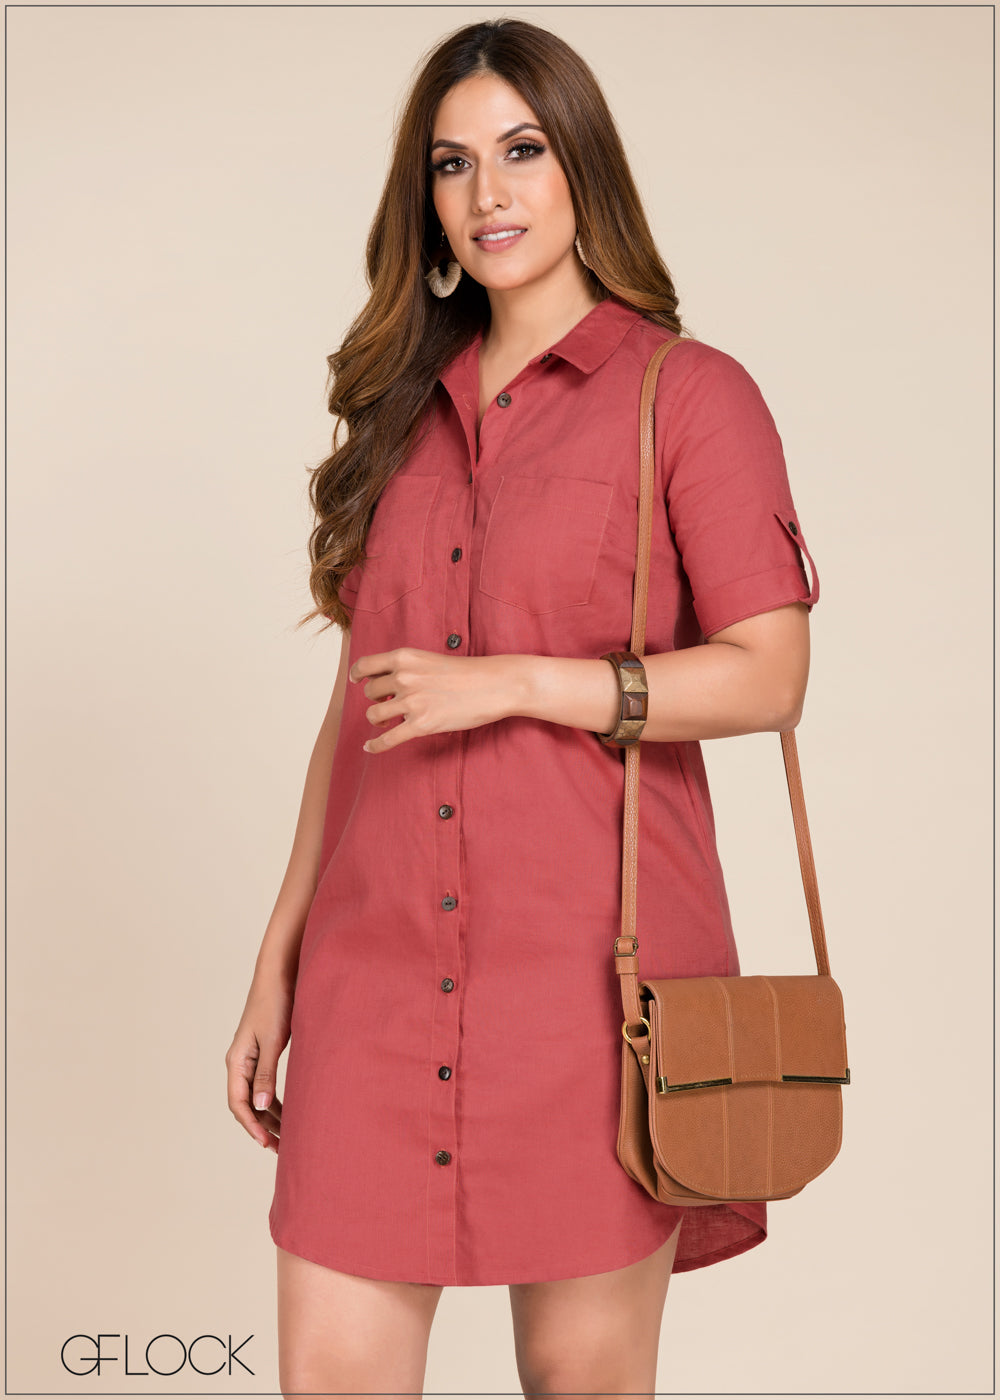 Shift Shirt Dress - GFLOCK.LK